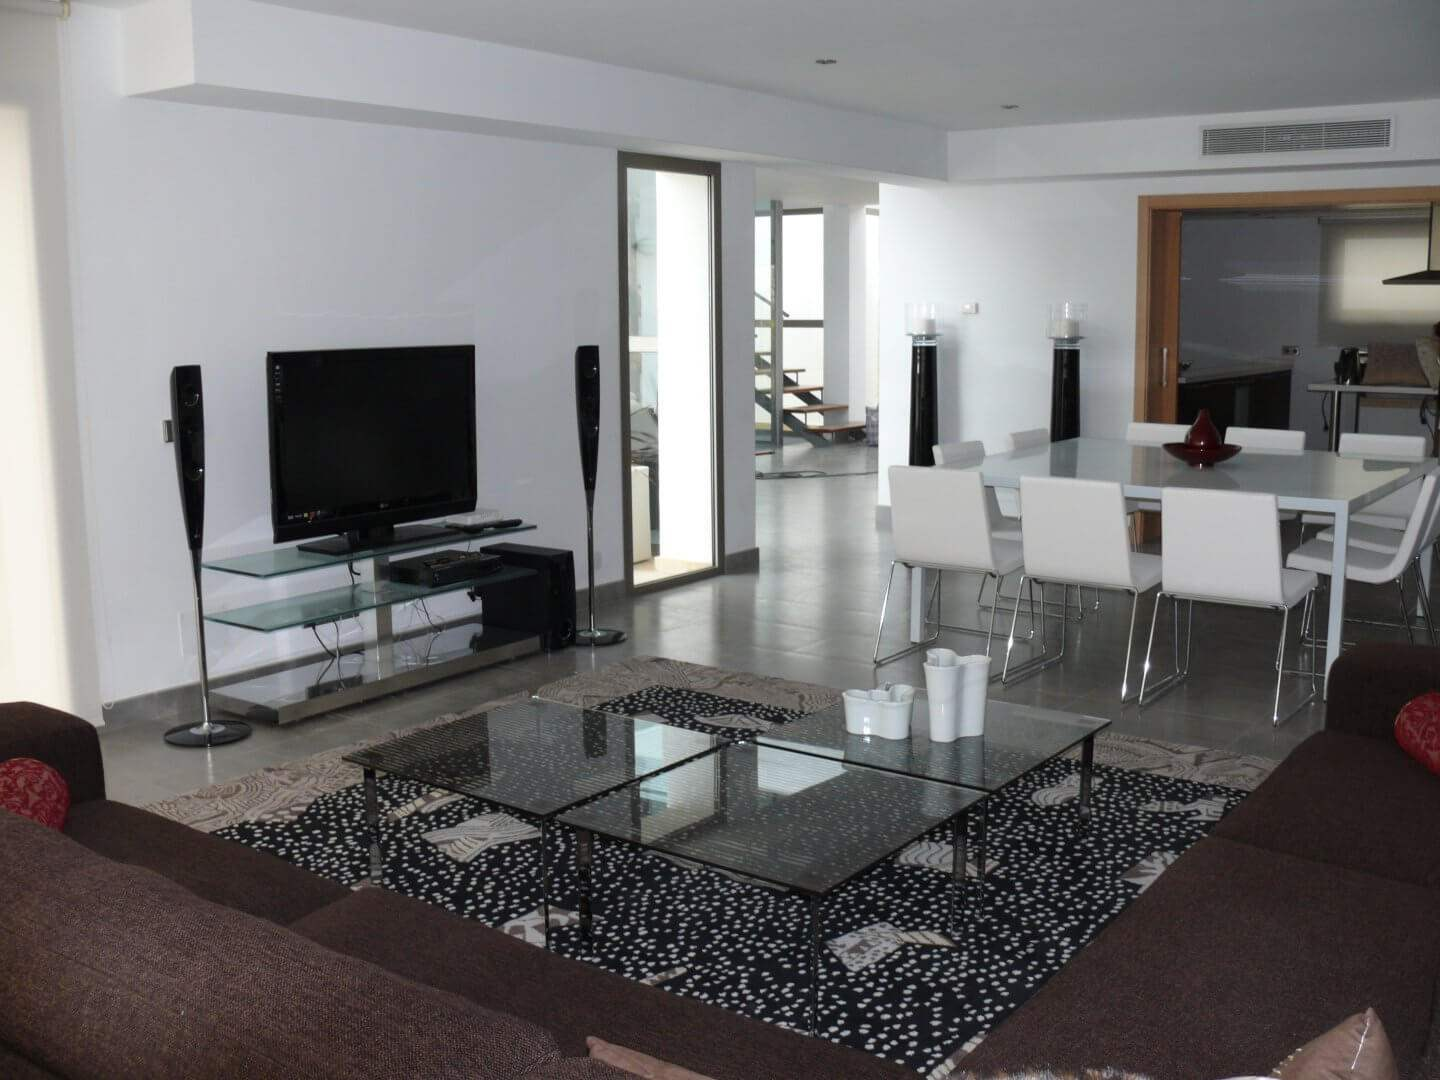 Casa Pitiusa, 4 Bedroom rate, 4 bedroom villa in Mahon, San Luis & South East, Menorca Photo #3